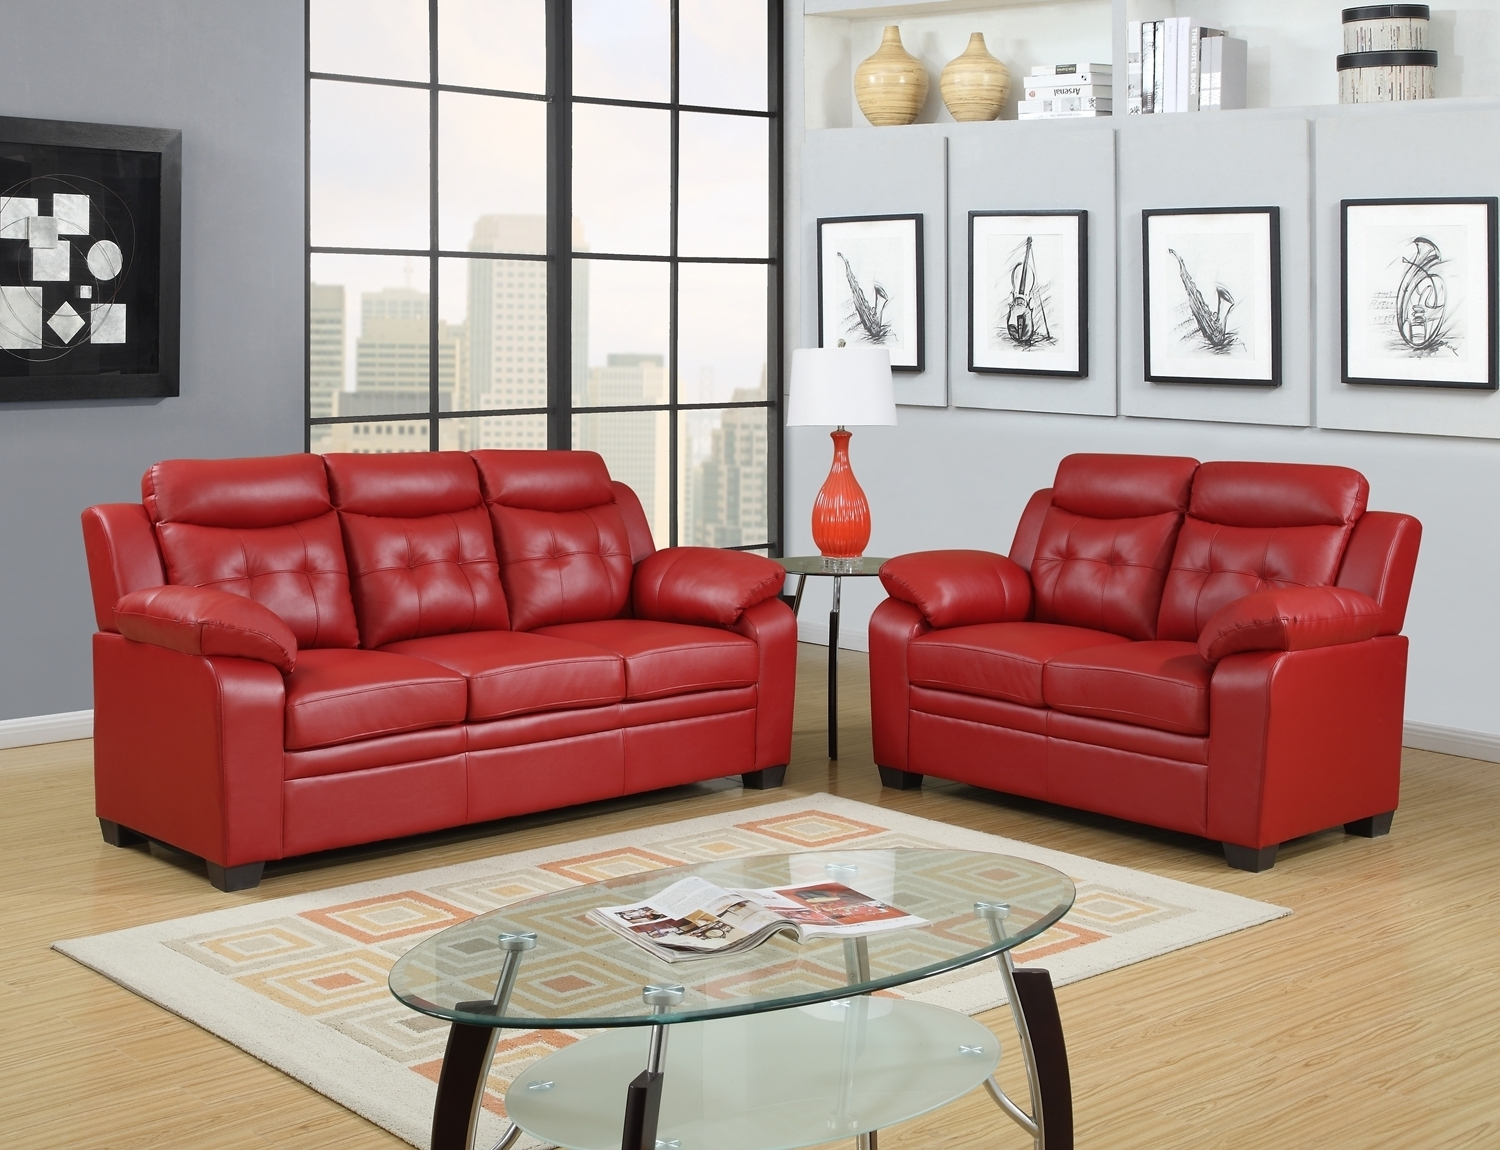 Red Leather Couches Regarding Recent Epic Red Leather Couch 13 In Sofas And Couches Set With Red (View 9 of 15)